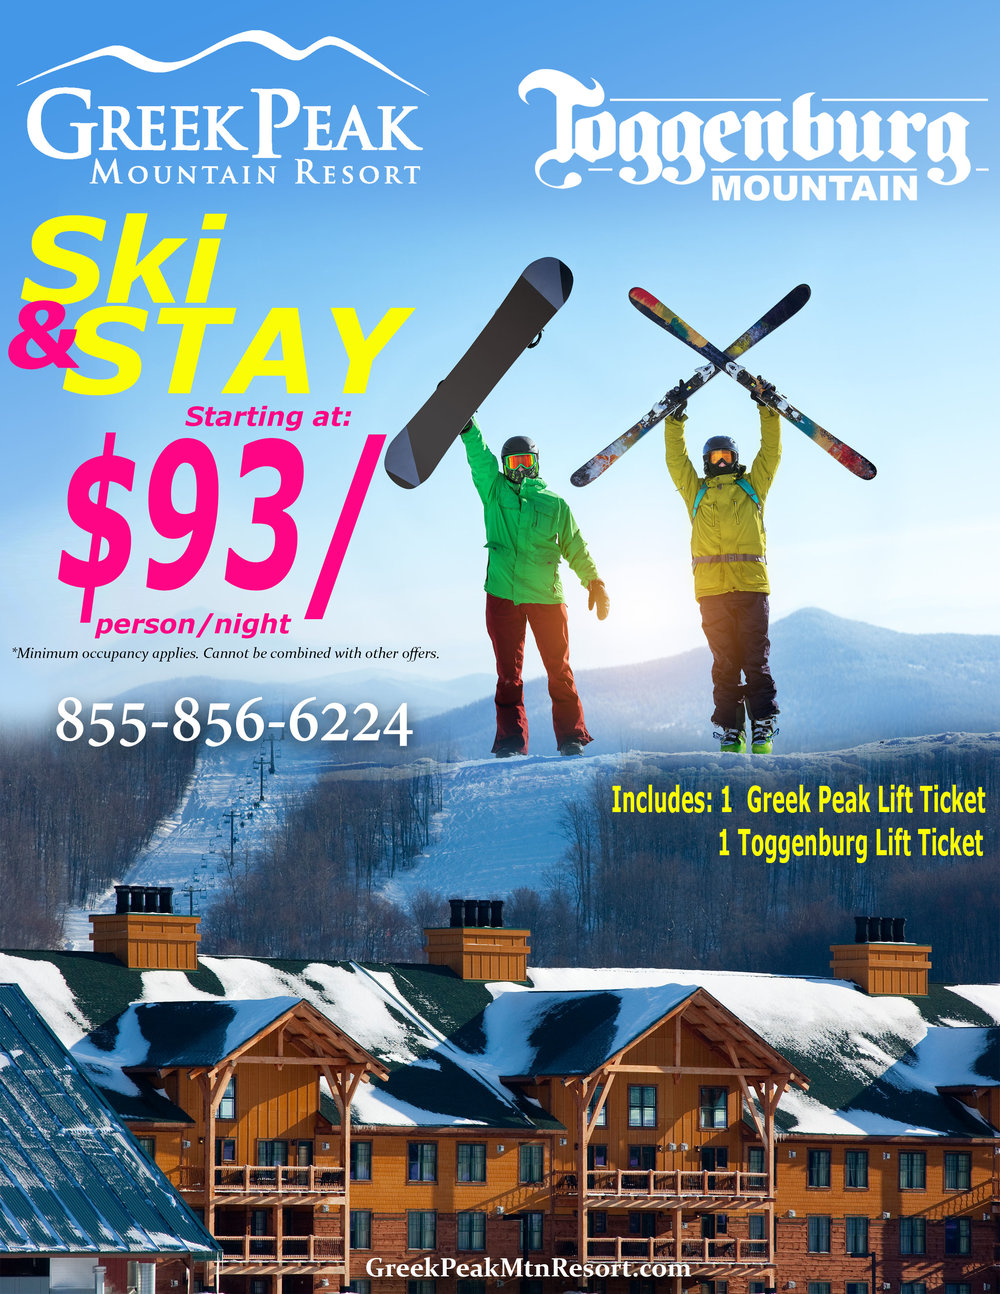 SKI & STAY - THIS SEASON ONLY! Ski at Toggenburg Mountain and Greek Peak Mountain Resort and stay at the Hope Lake Lodge Friday - Sunday for just $93/night!